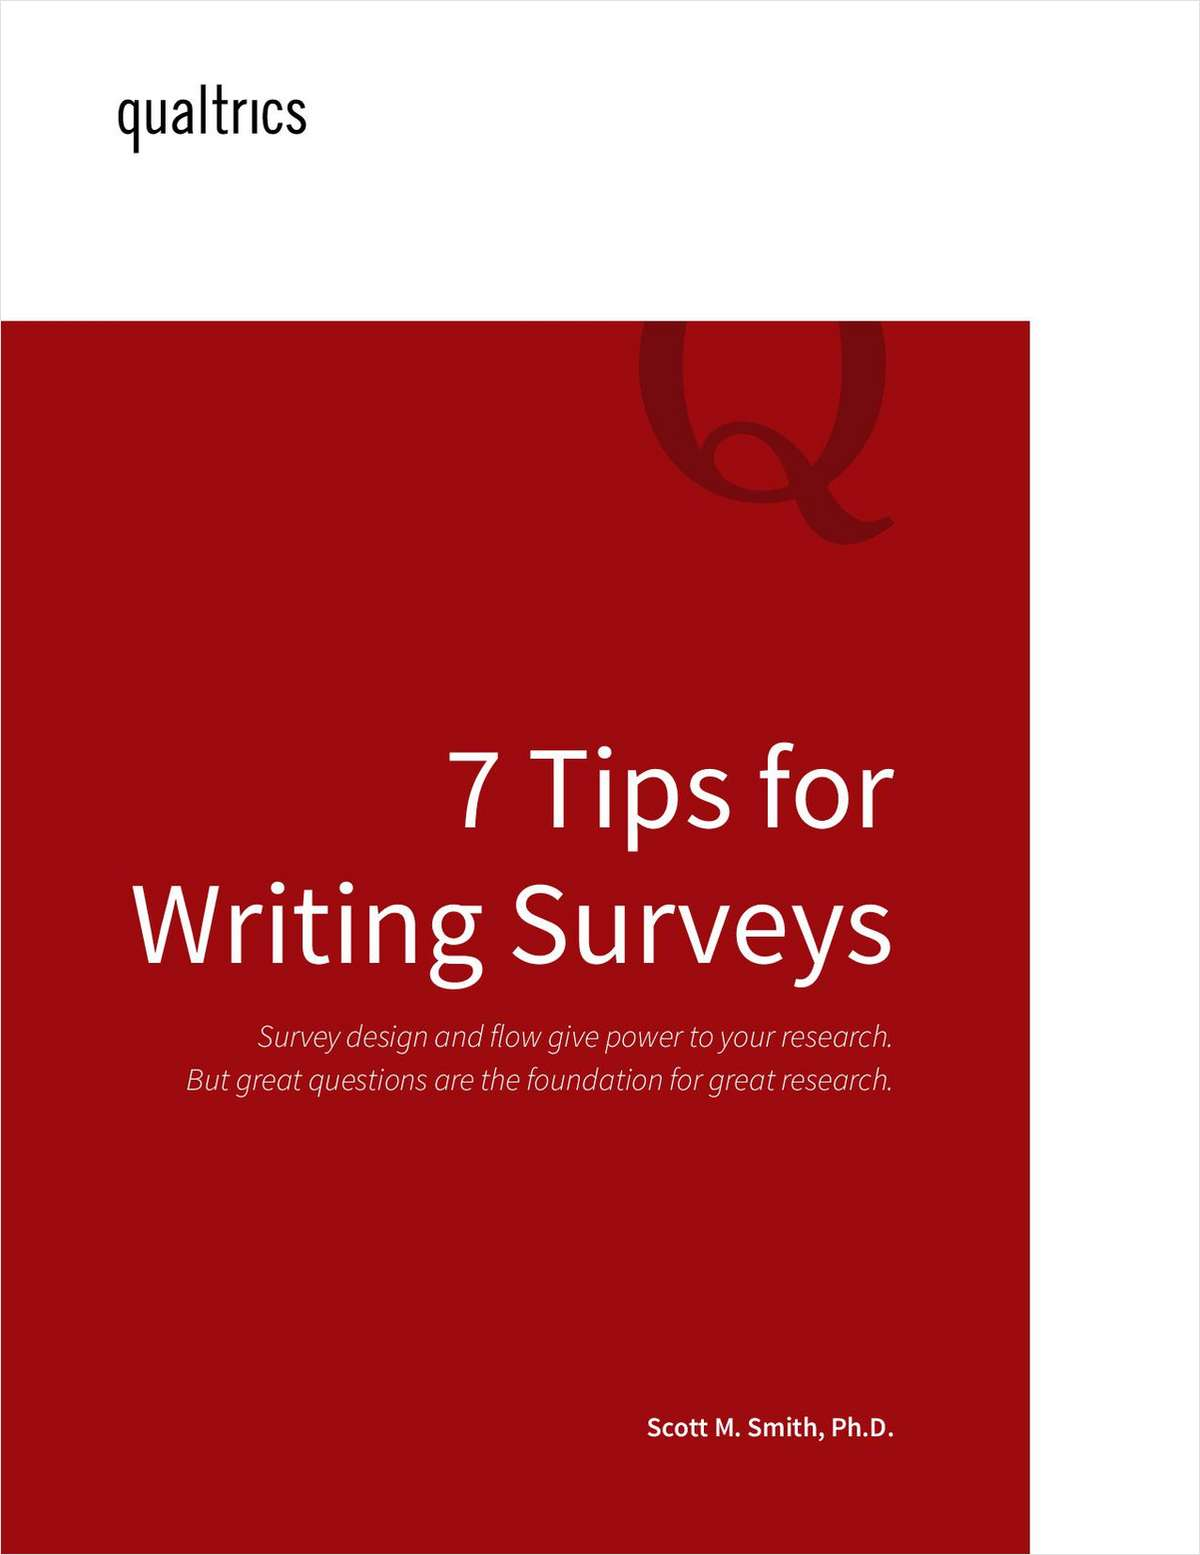 7 Tips for Writing Survey Questions